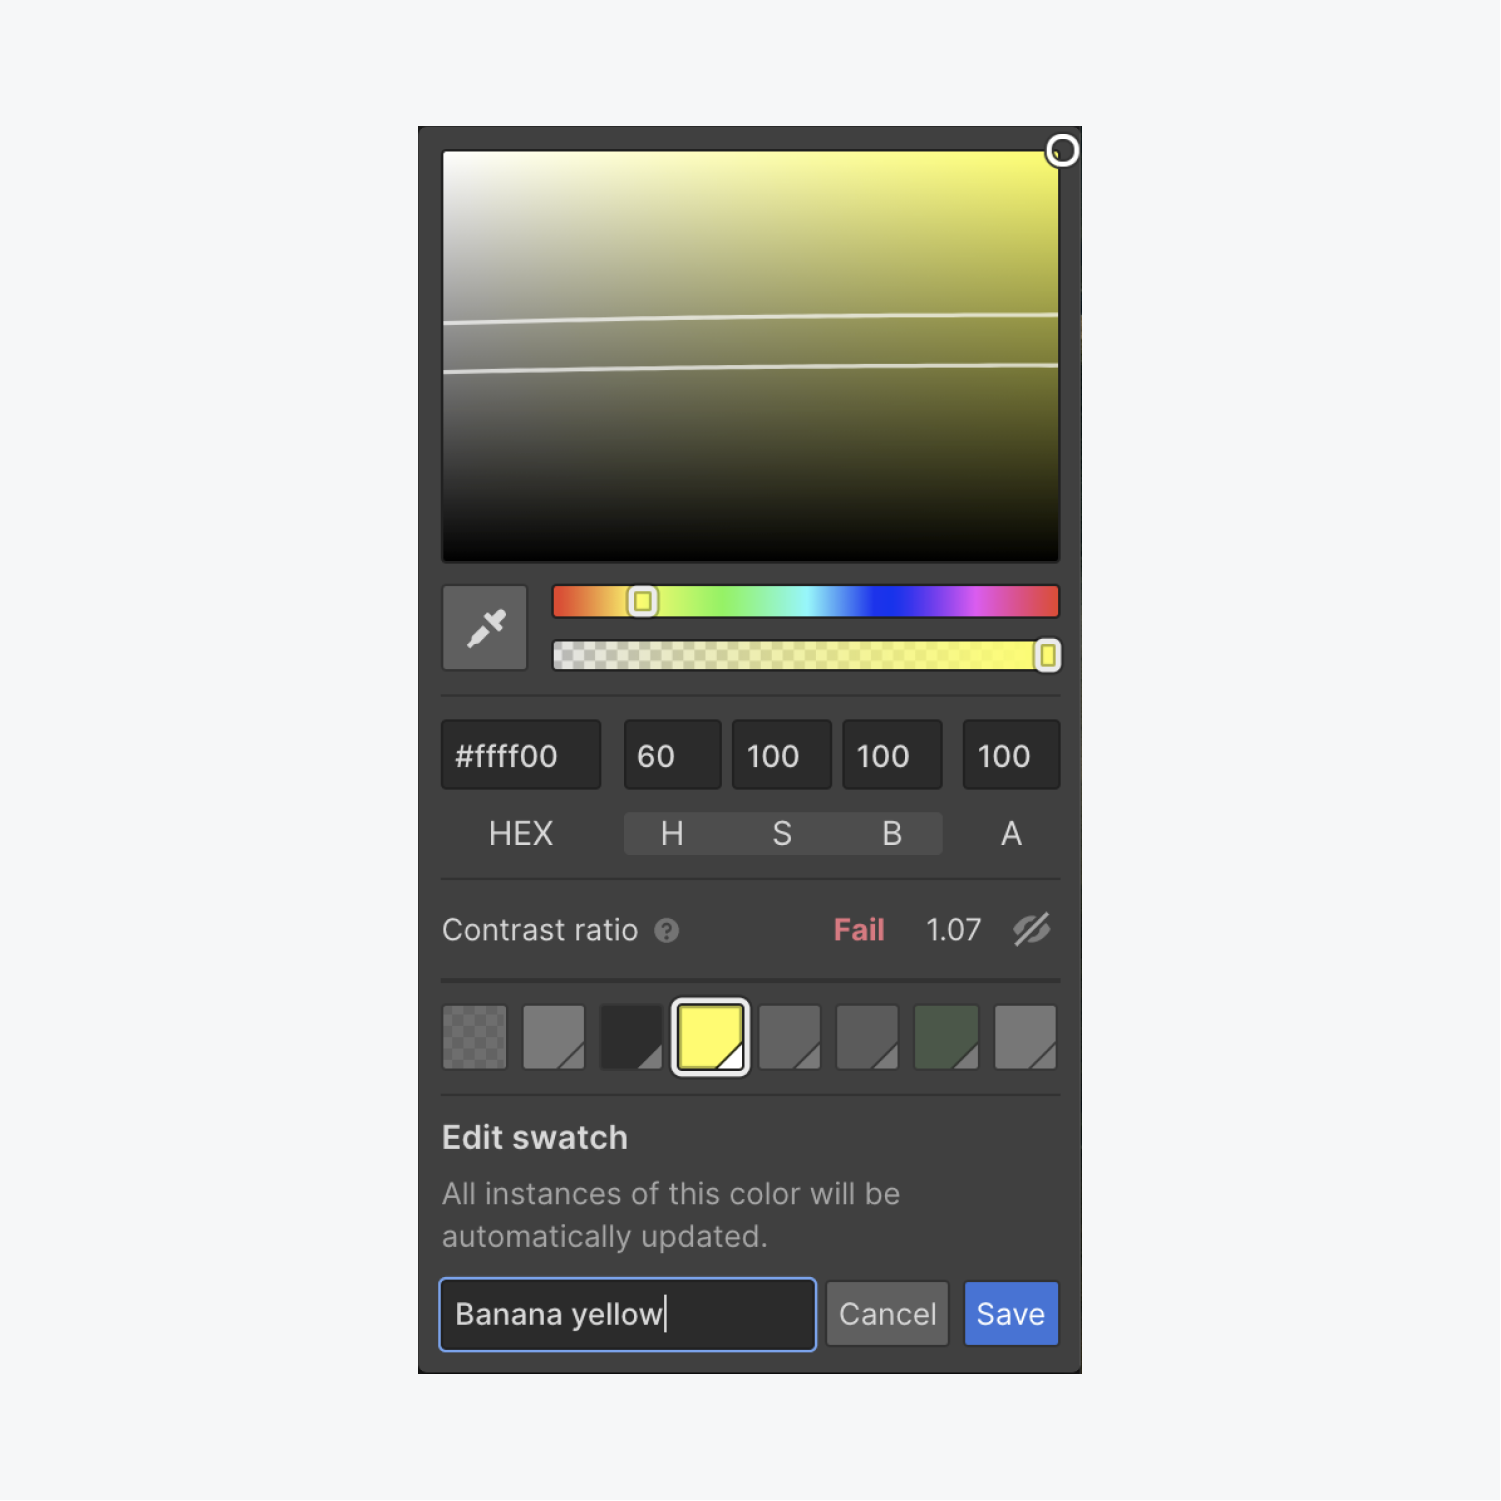 You can edit a swatch color to update that color throughout your project. Open the color picker, click the swatch you want to edit, click the pencil icon, choose your new color, rename the swatch, and press Save.